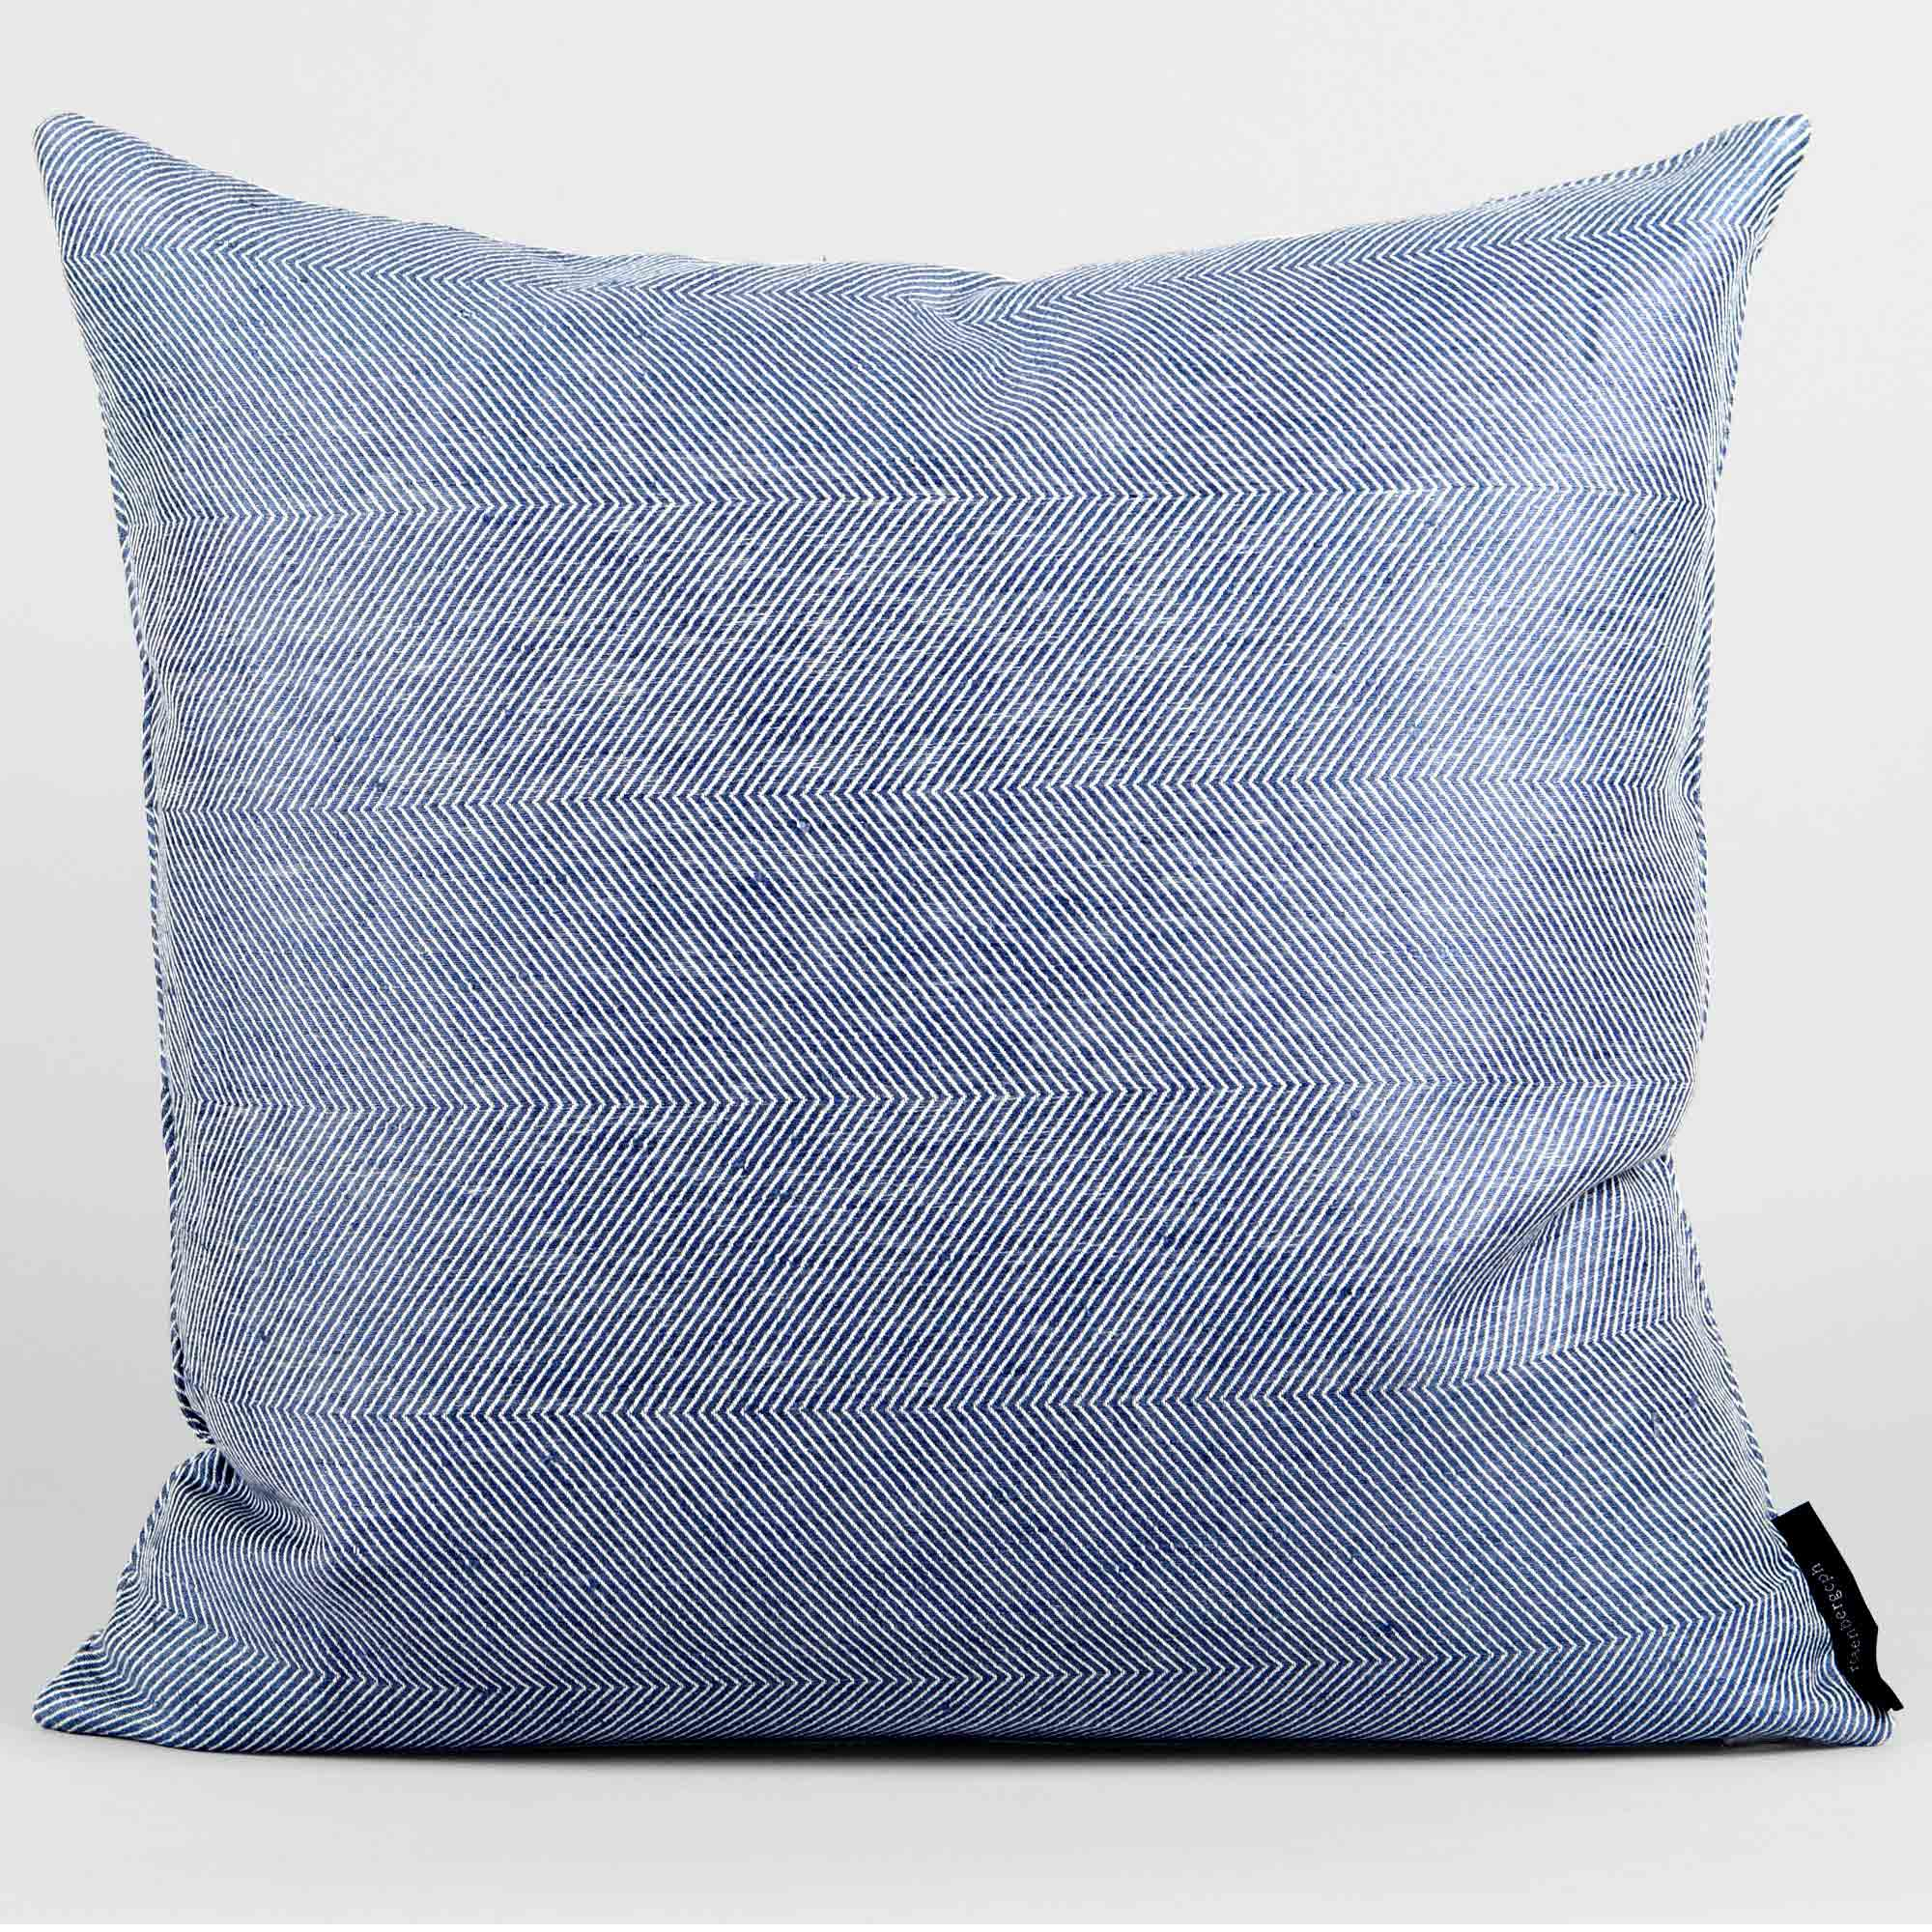 Square cushion, linen/cotton, blue